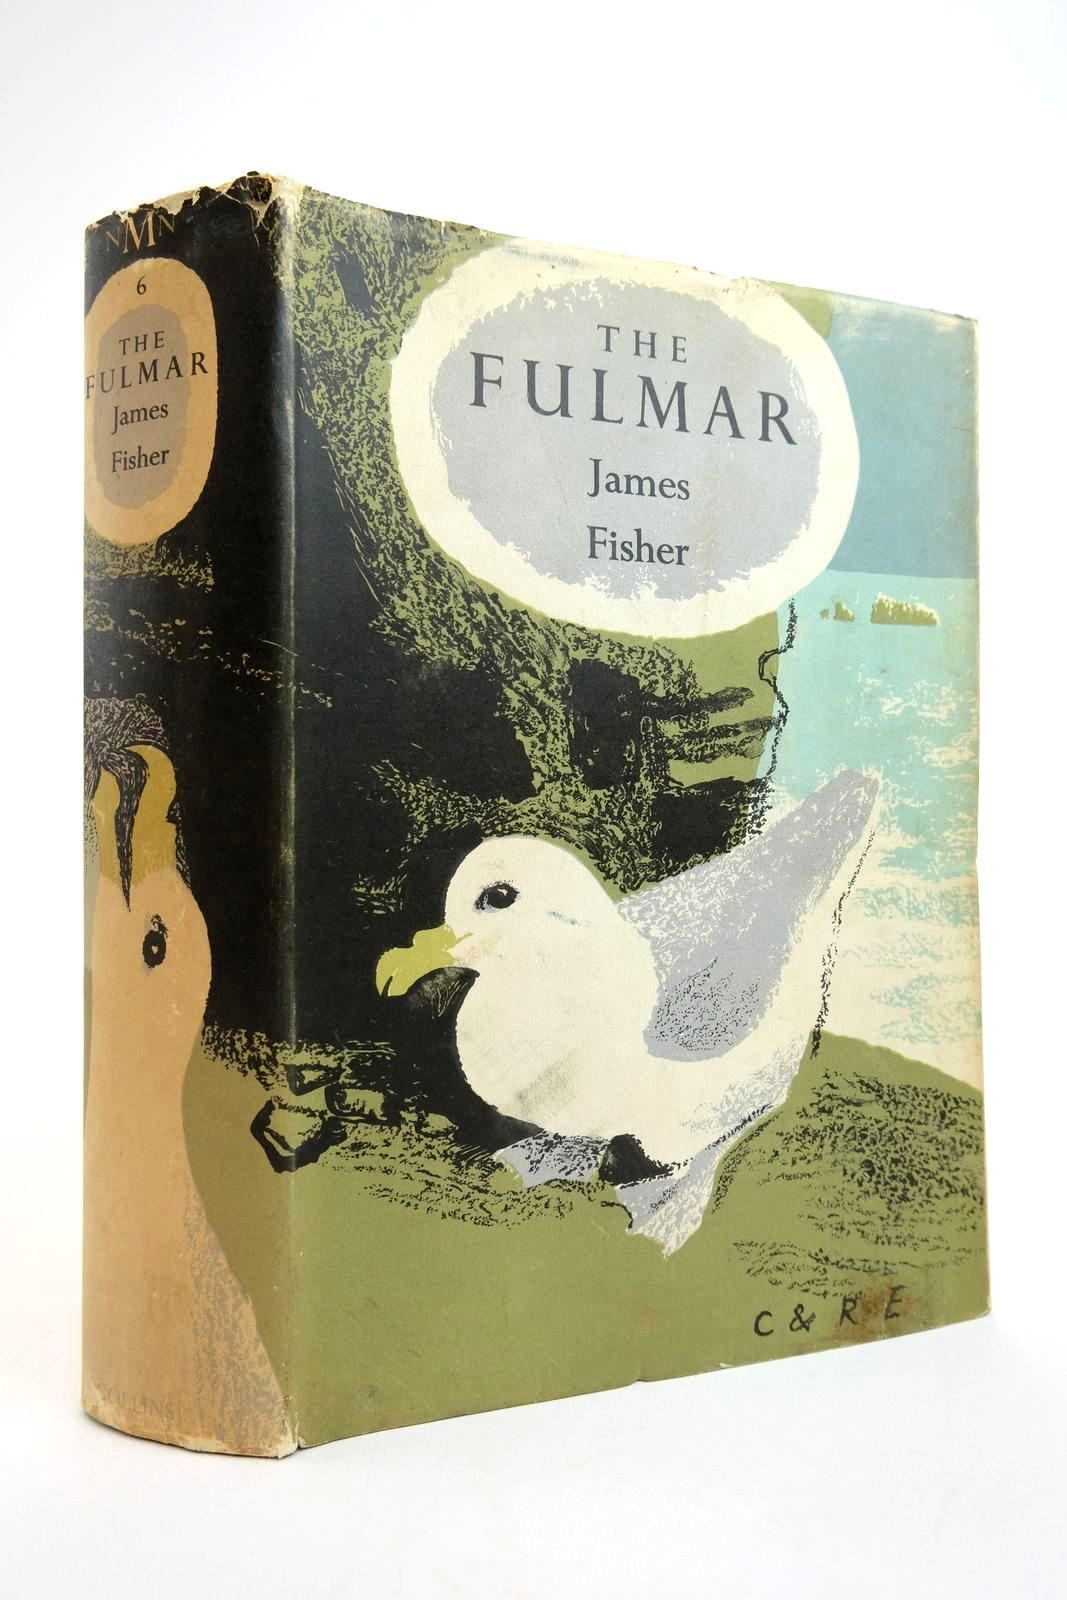 Photo of THE FULMAR (NMN 6) written by Fisher, James illustrated by Scott, Peter published by Collins (STOCK CODE: 2134993)  for sale by Stella & Rose's Books